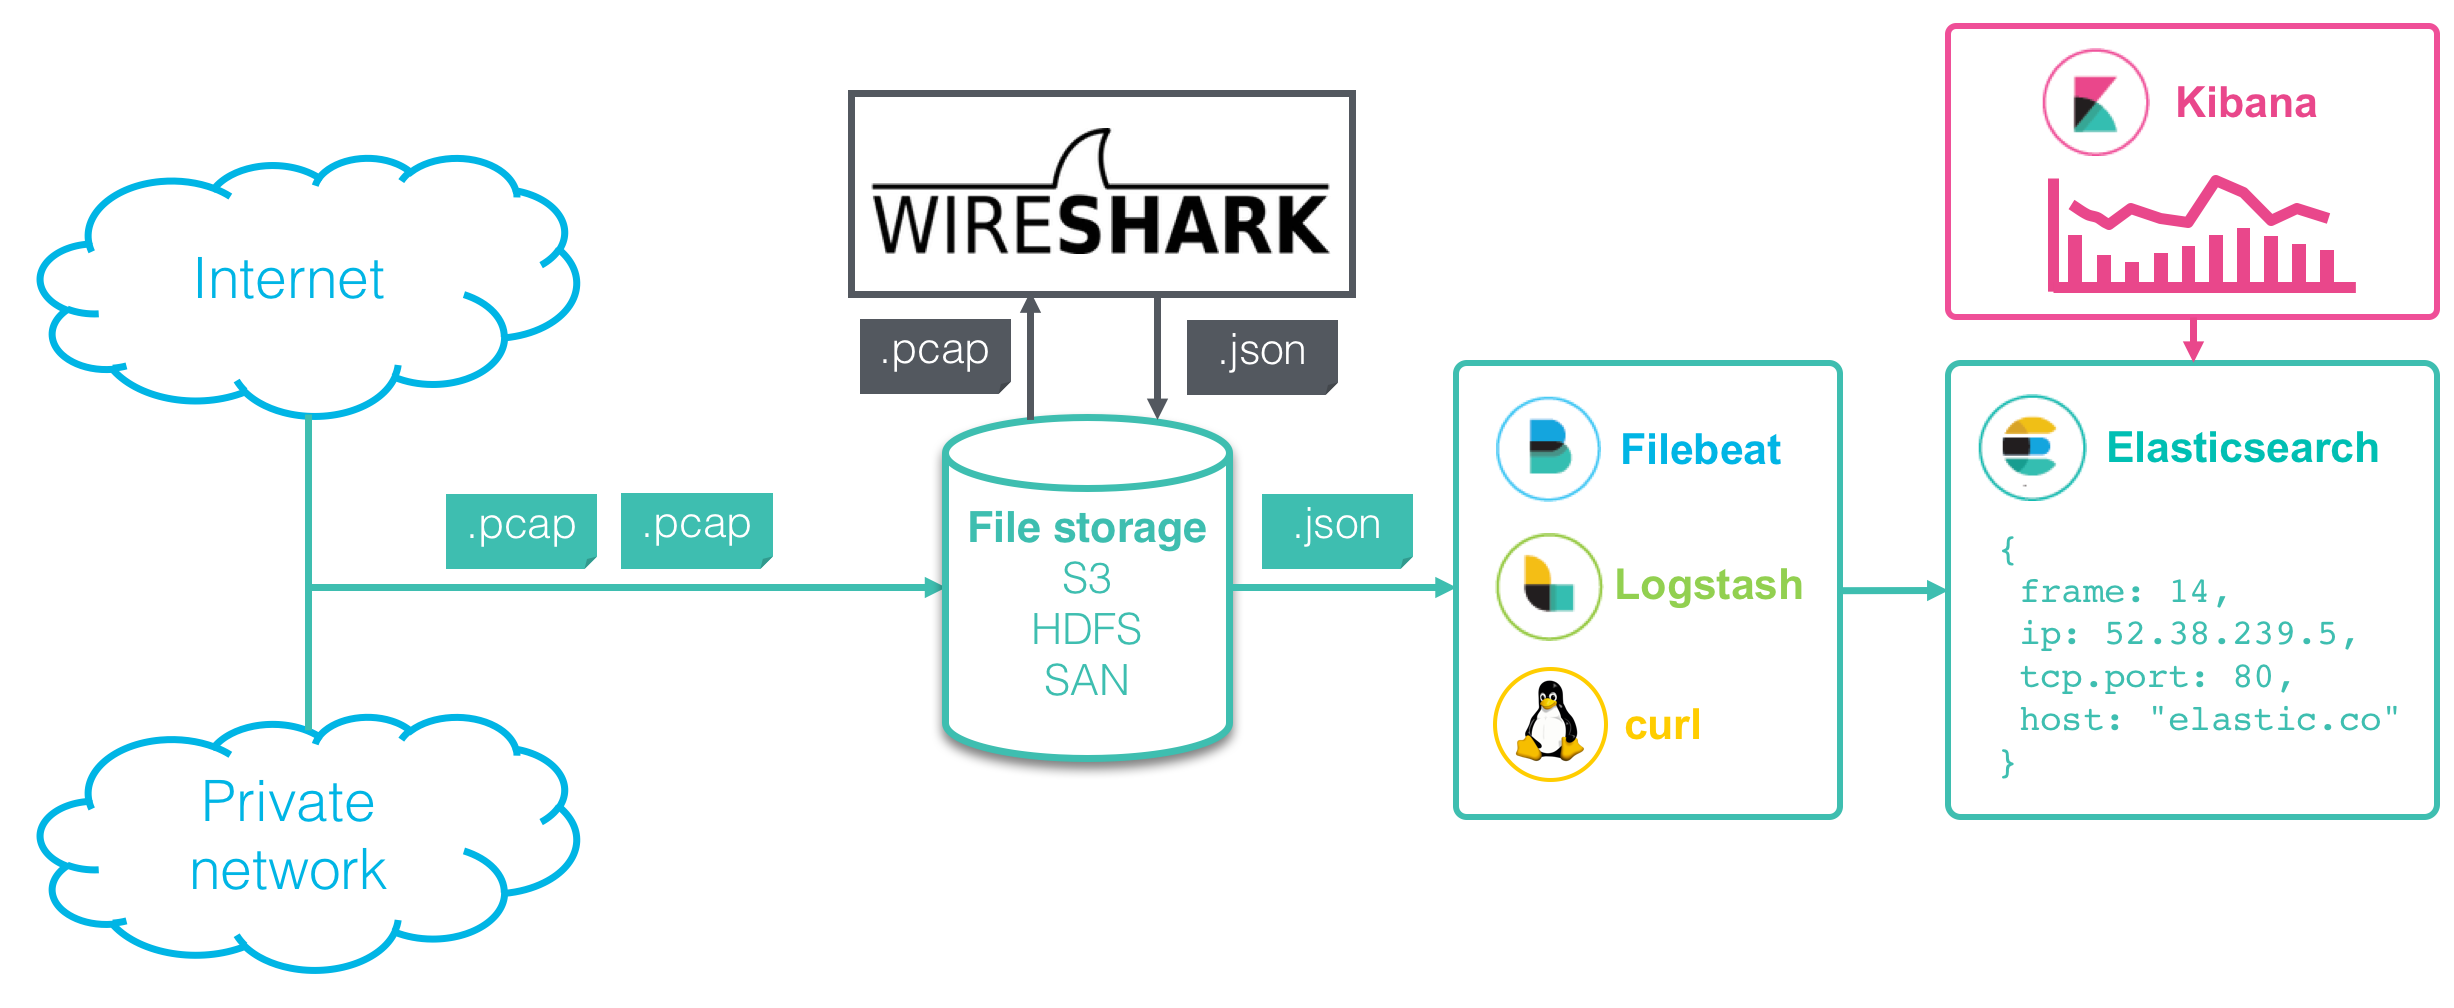 Analyzing network packets with Wireshark, Elasticsearch, and Kibana